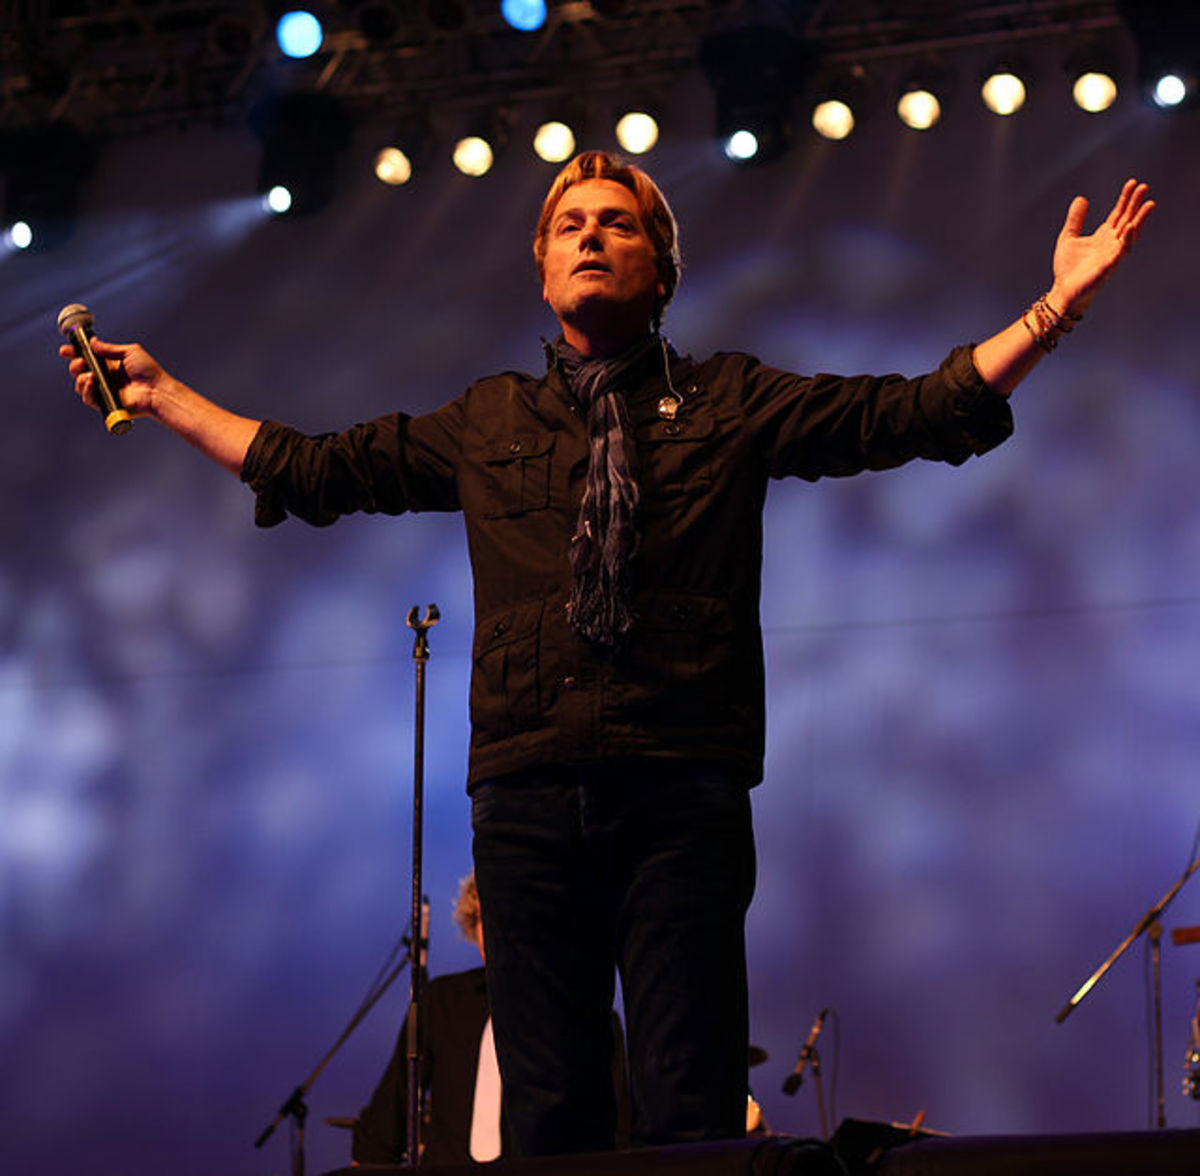 Michael W. Smith in concert, 2010. Friends was co-written and recorded by Michael W. Smith.